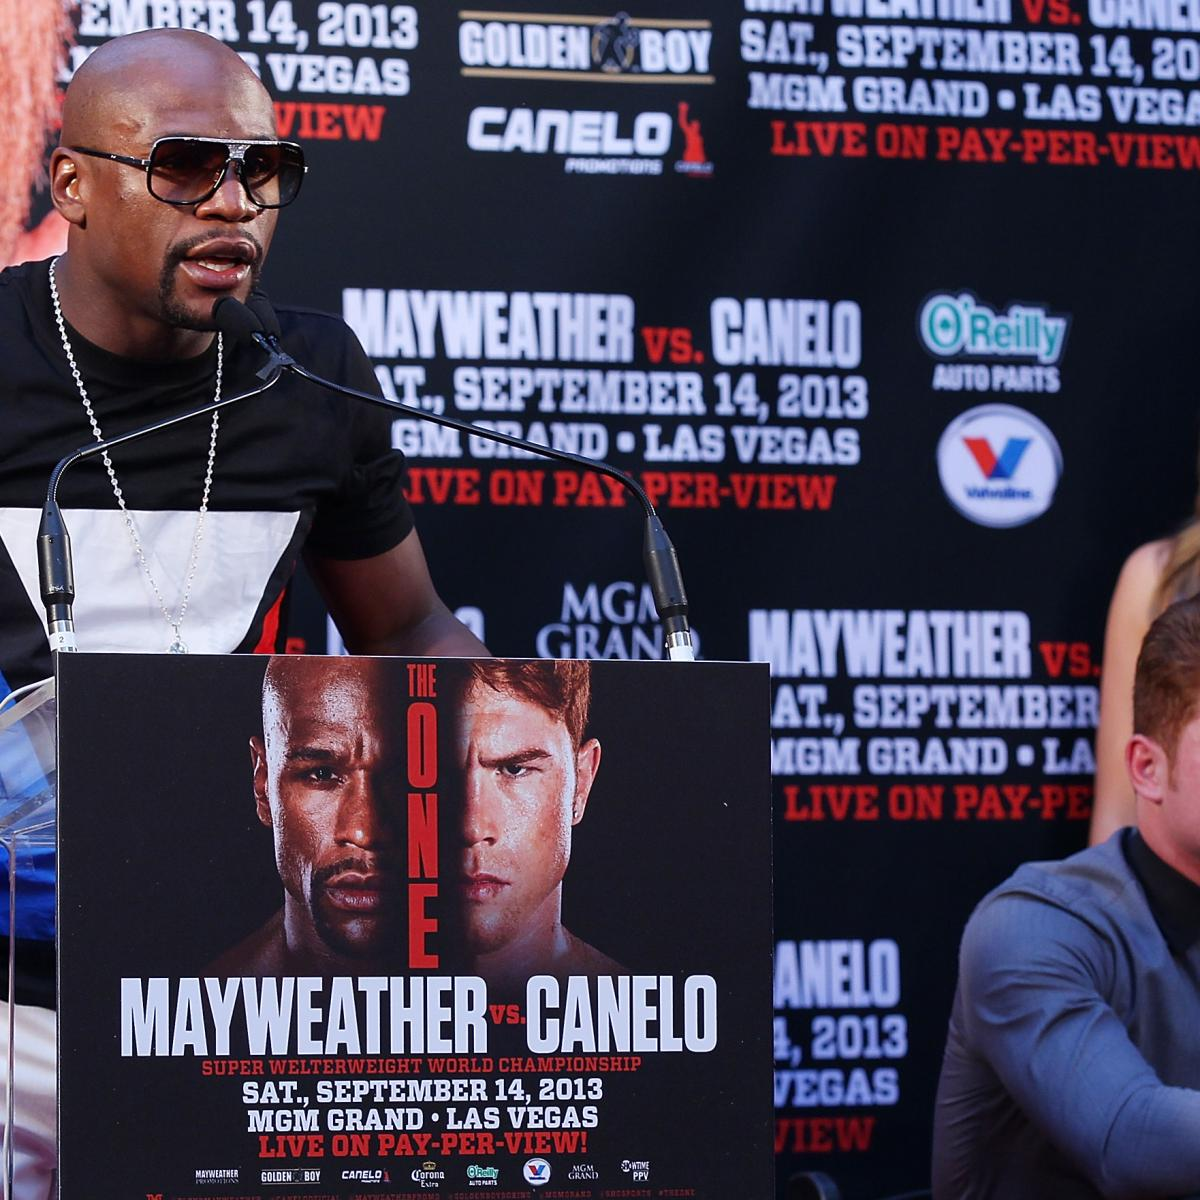 Canelo vs mayweather betting odds off-track betting corporation middletown ny